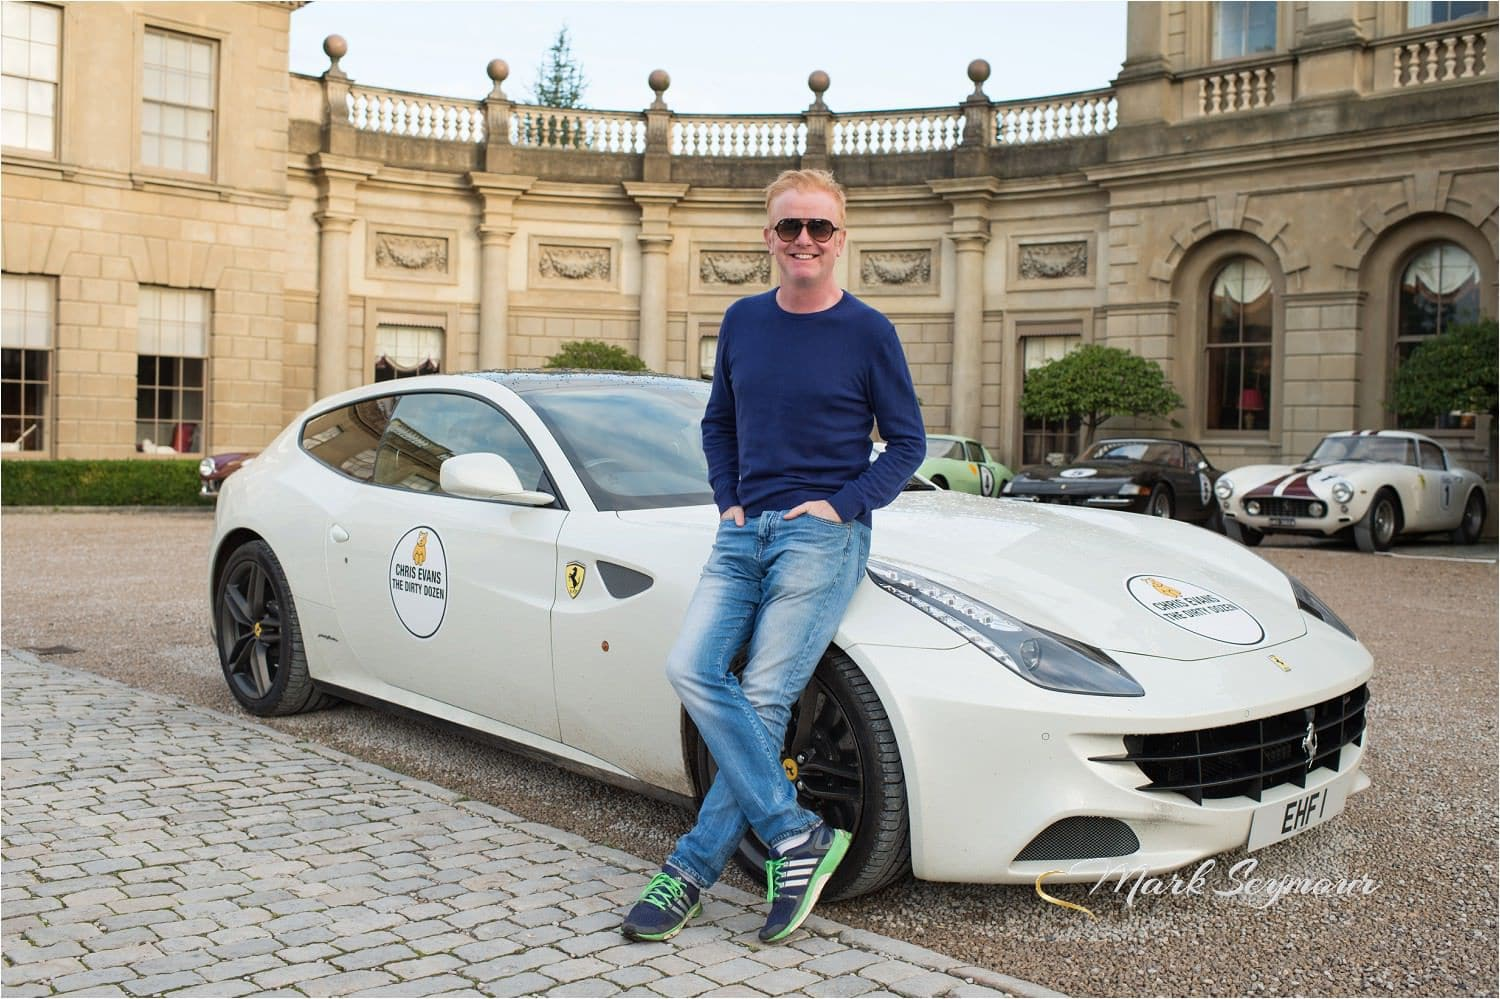 Chris Evans with Ferrari at Cliveden House